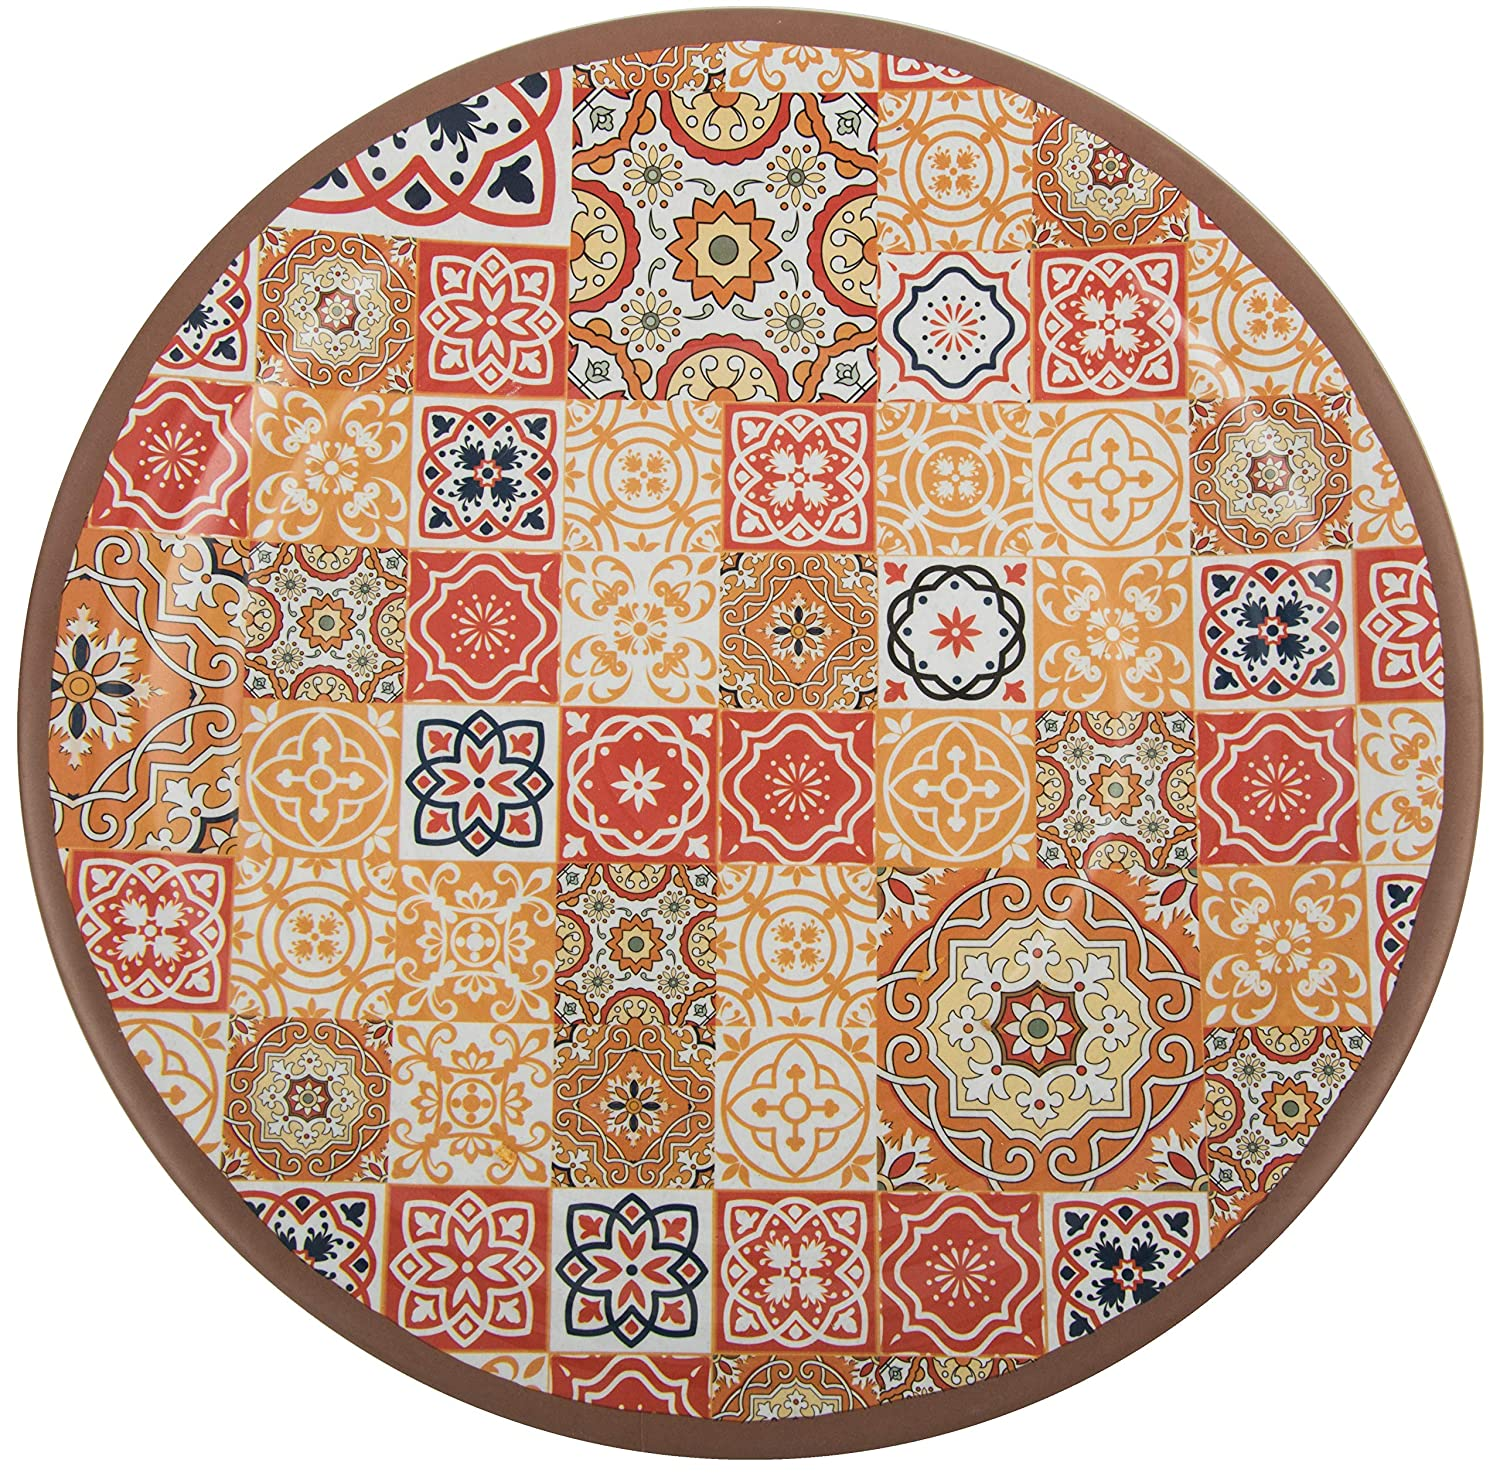 Melange 6-Piece 100/% Melamine Dinner Plate Set Moroccan Tiles | Shatter-Proof and Chip-Resistant Melamine Dinner Plates Color: Multicolor